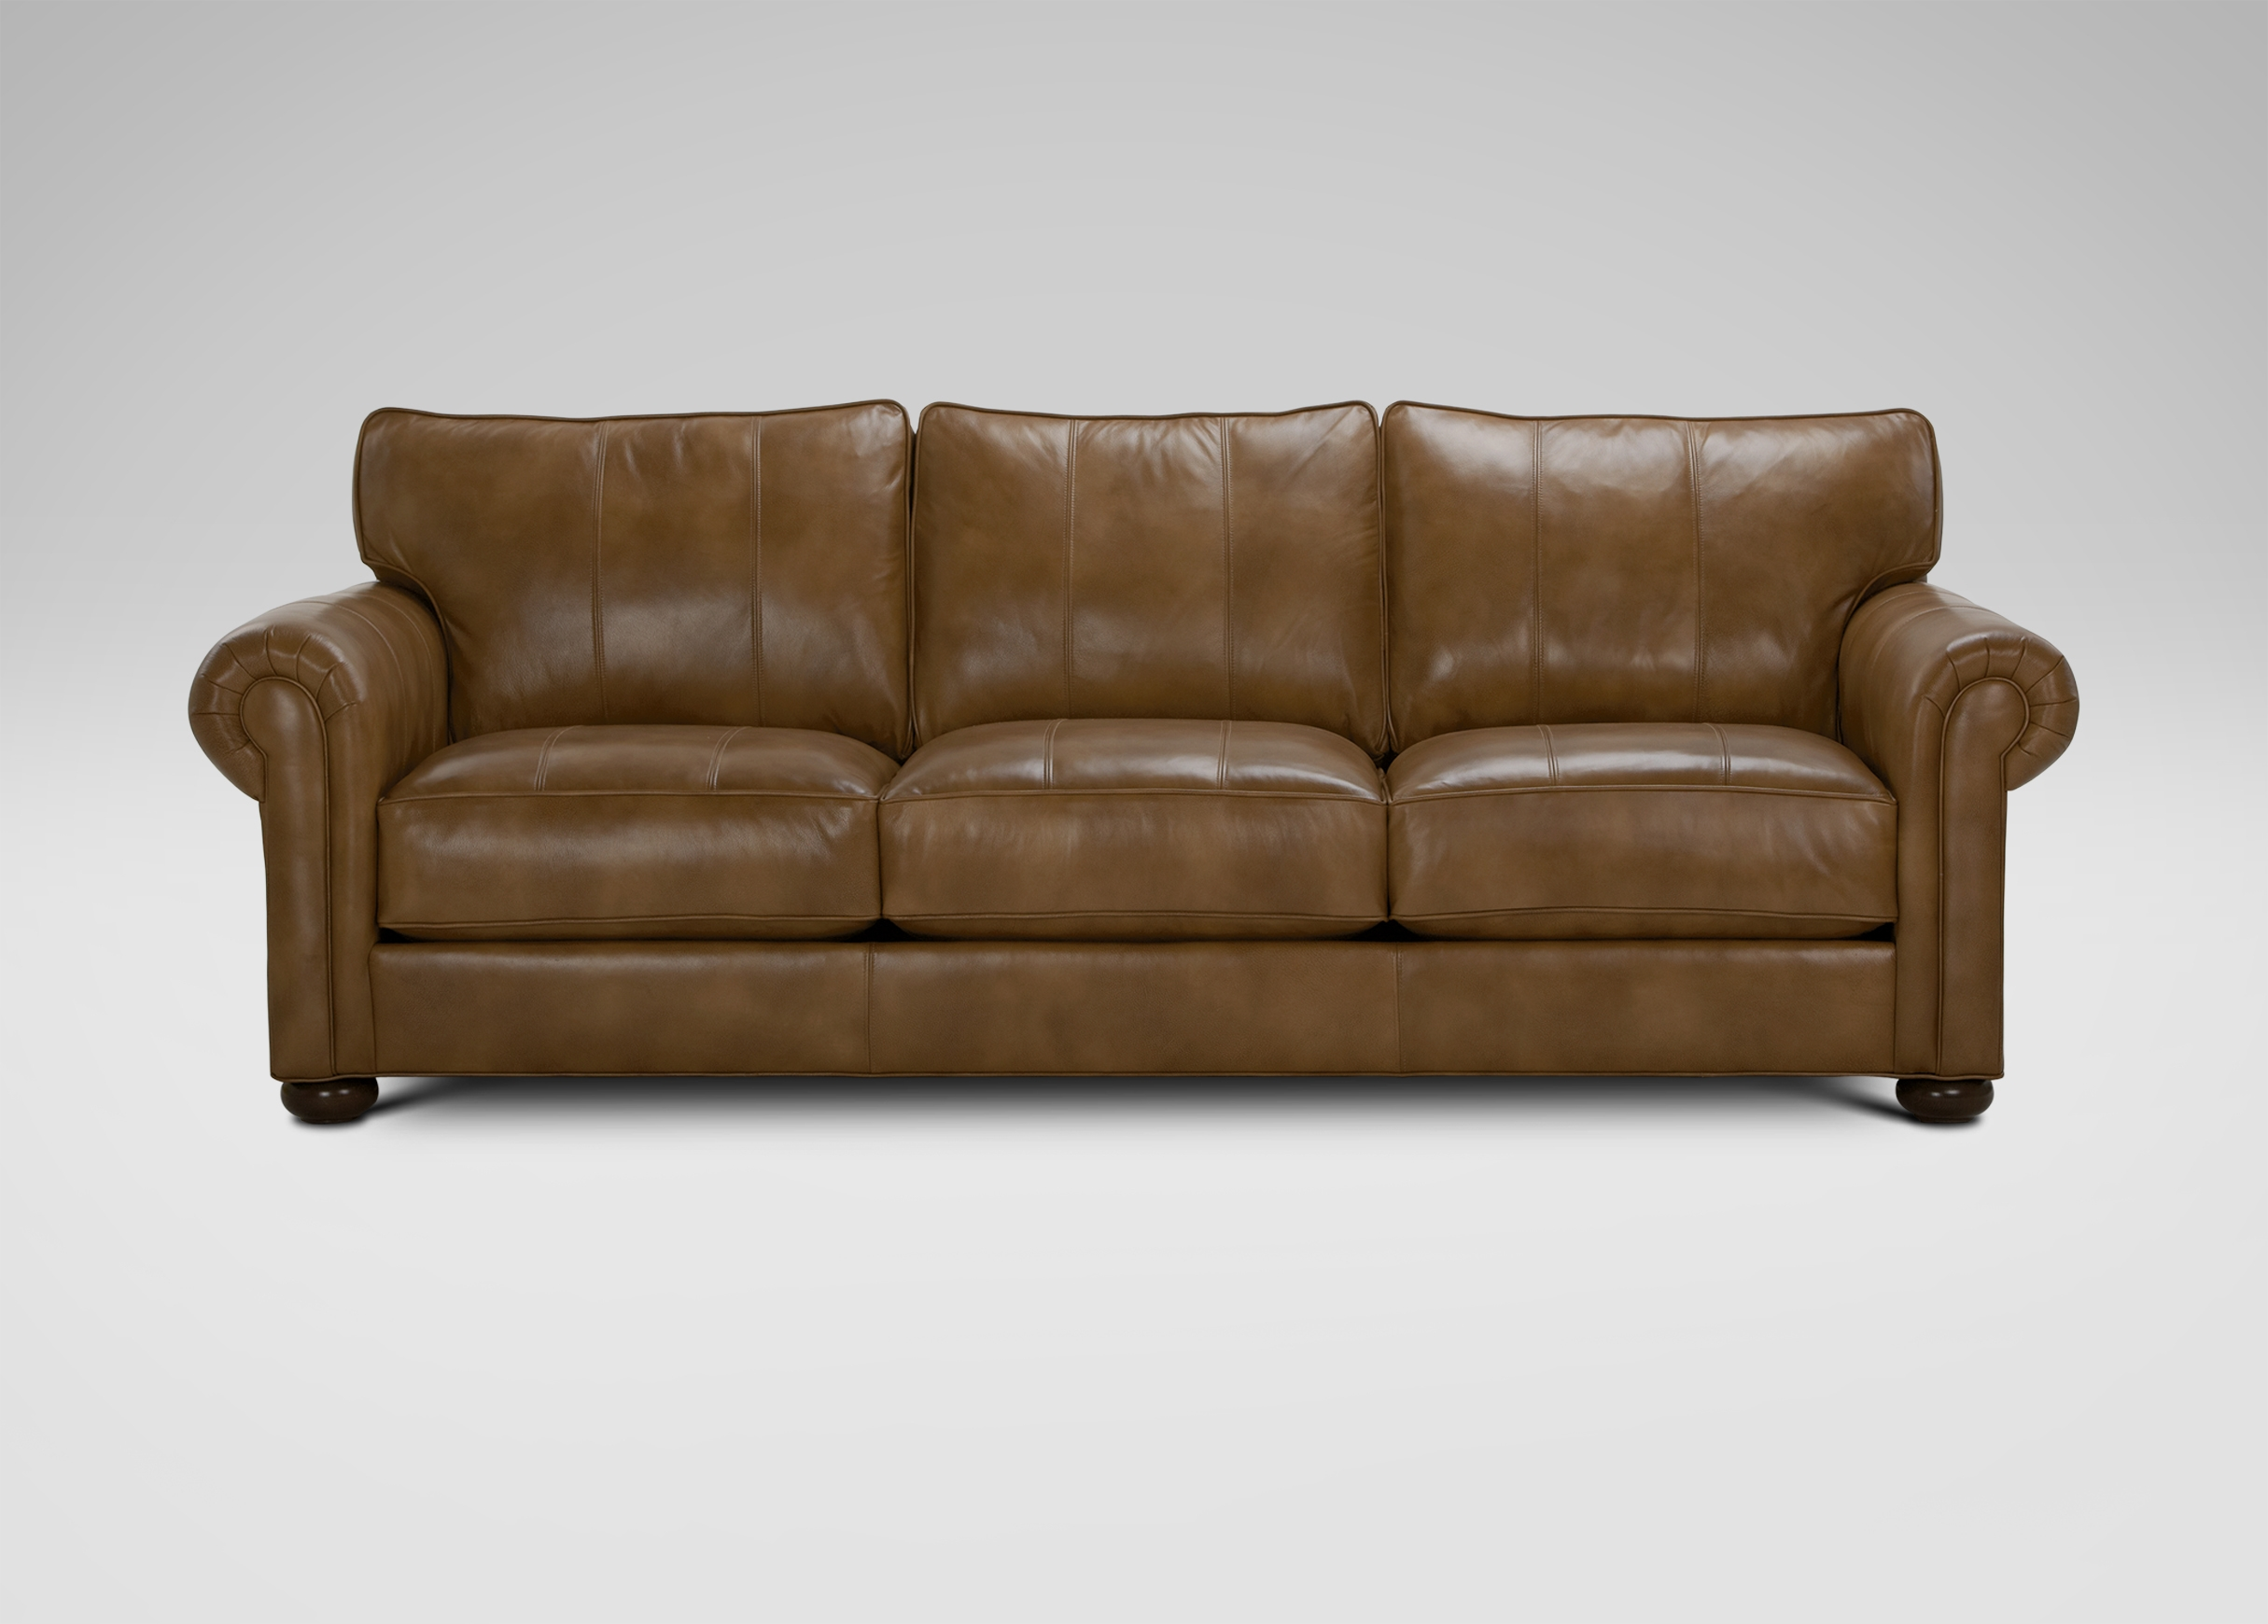 Richmond Leather Sofa Sofas Loveseats Regarding Ethan Allen Sofas And Chairs (Image 12 of 15)